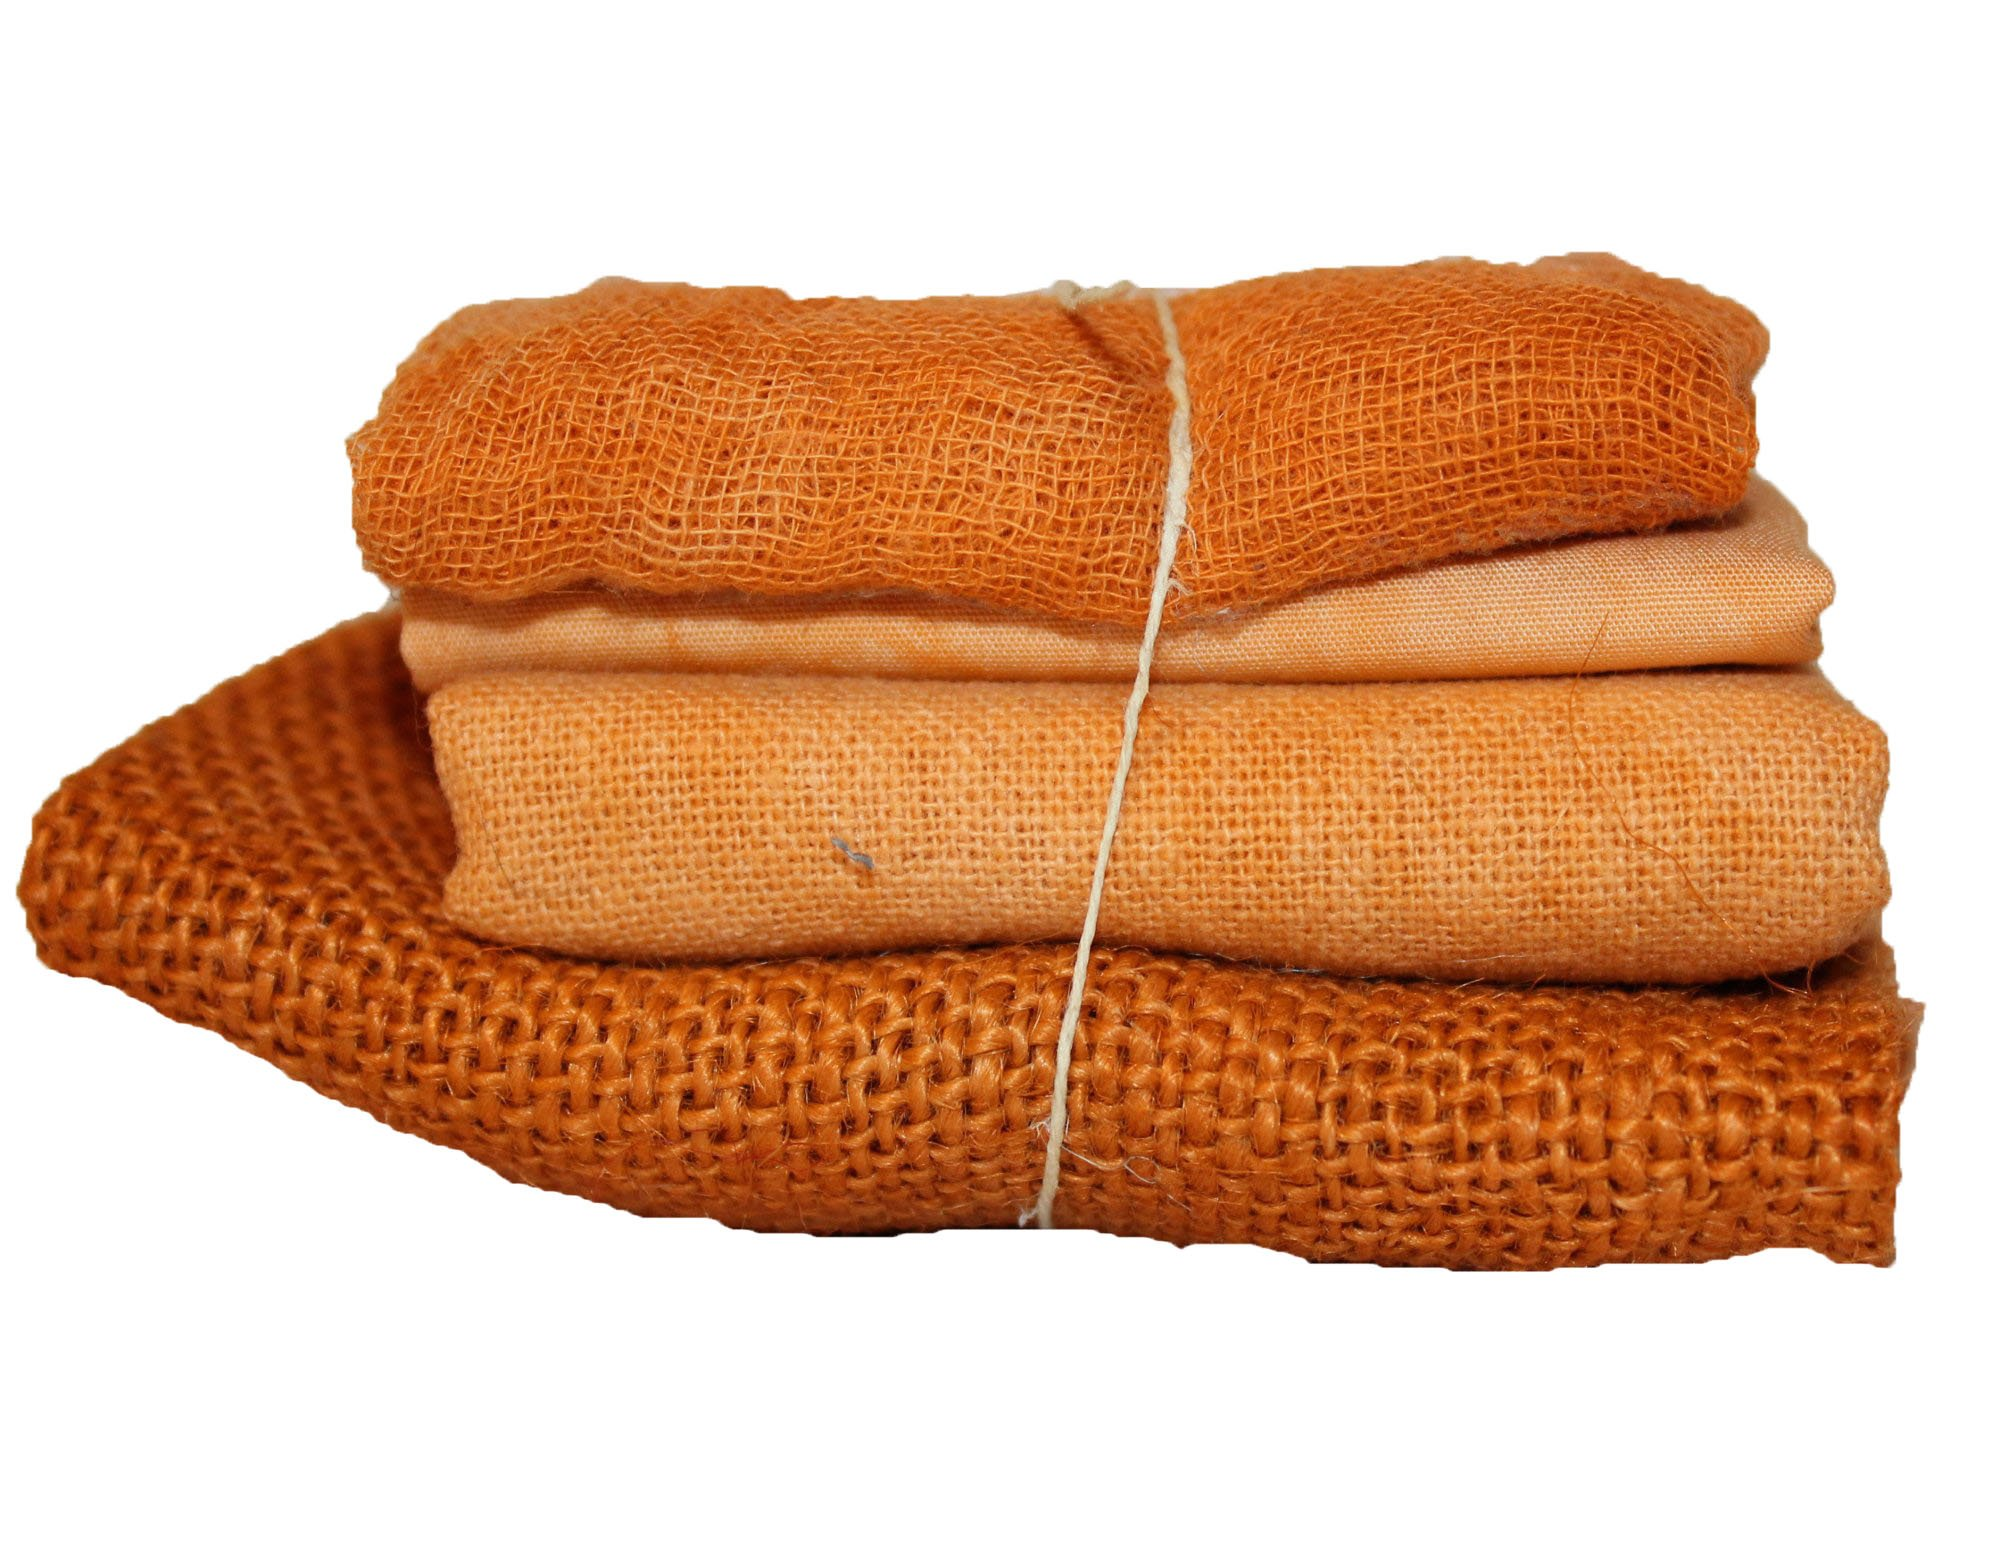 Amber Bindle - Cheesecloth, Cotton, Osnaburg, & Burlap